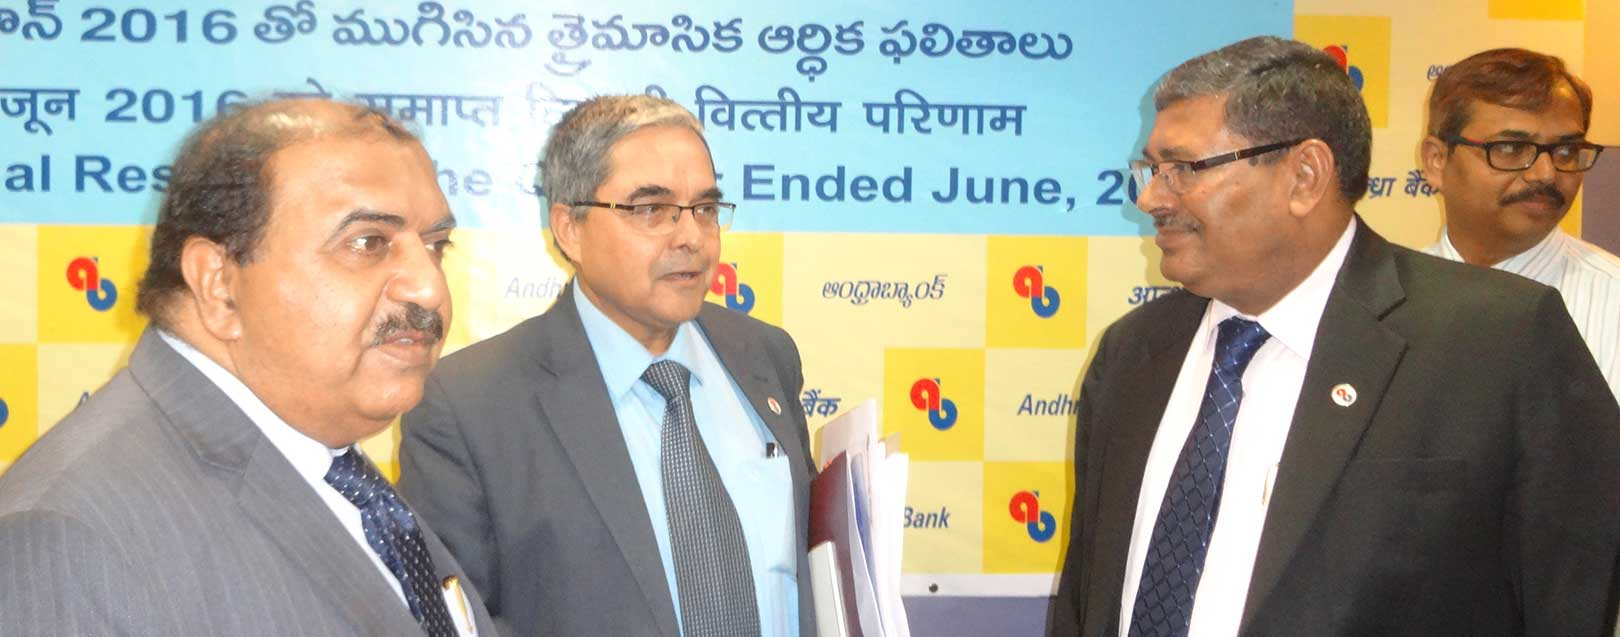 Andhra Bank raises Rs.1,900 cr via bonds in April-June quarter